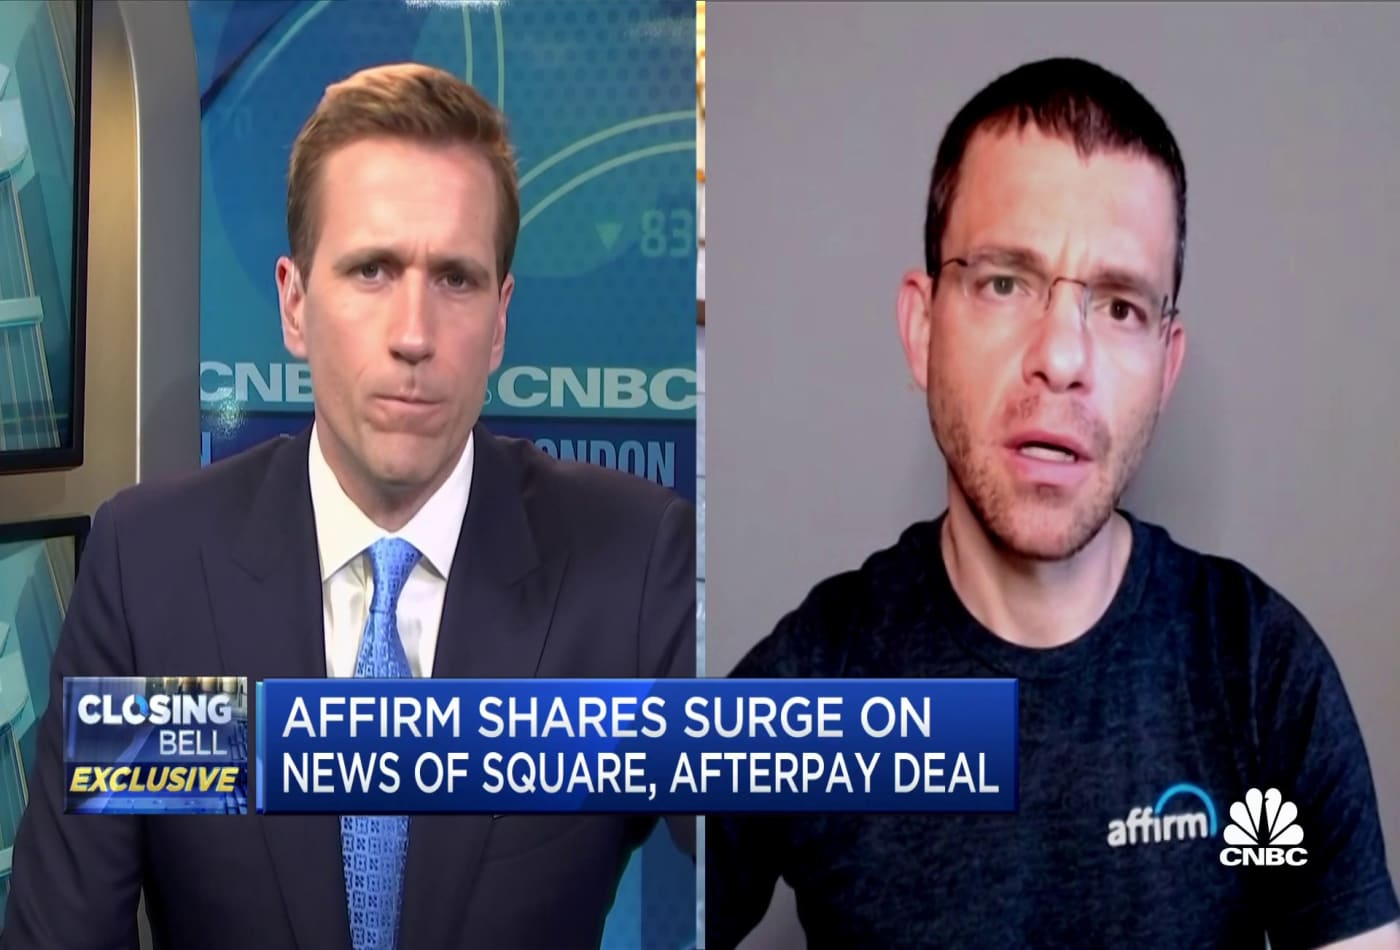 Affirm shares surge following Square, Afterpay deal